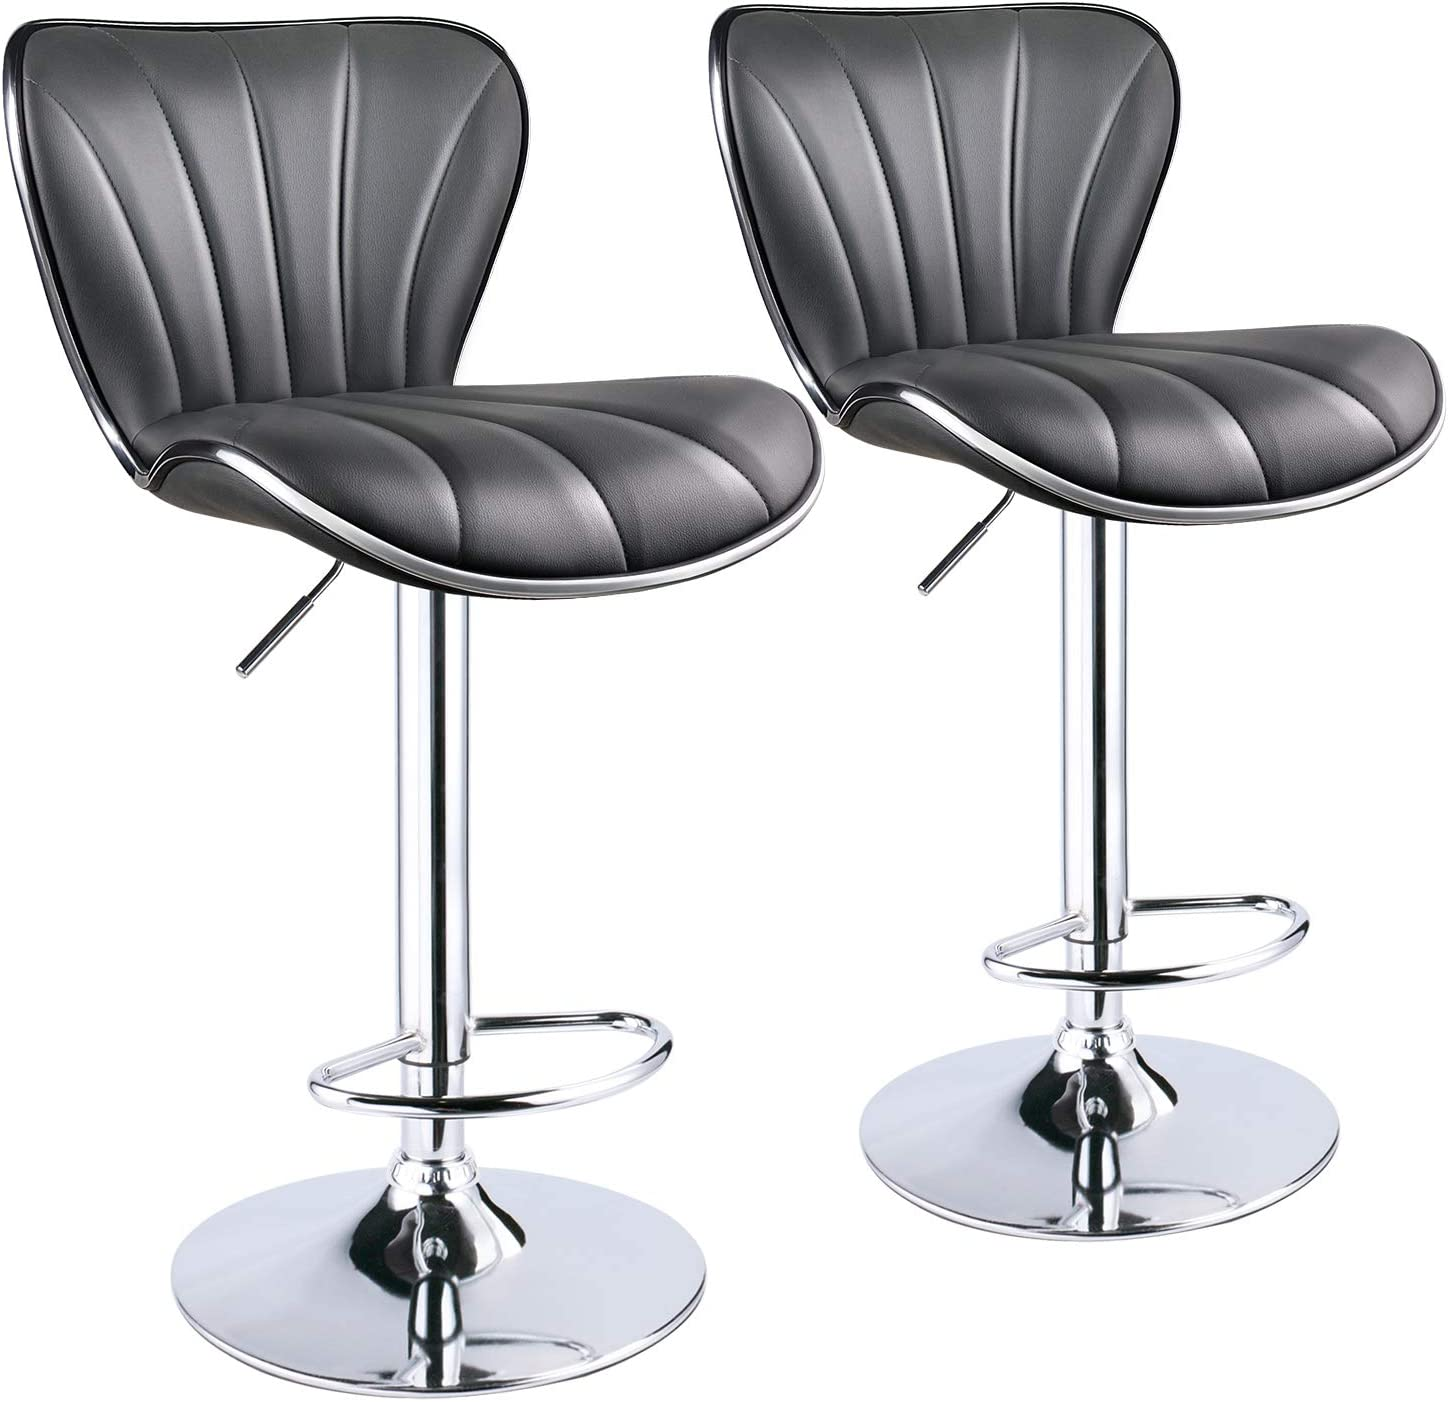 Leopard Shell Stripe Back Adjustable Bar Stools, Set of 2 Grey